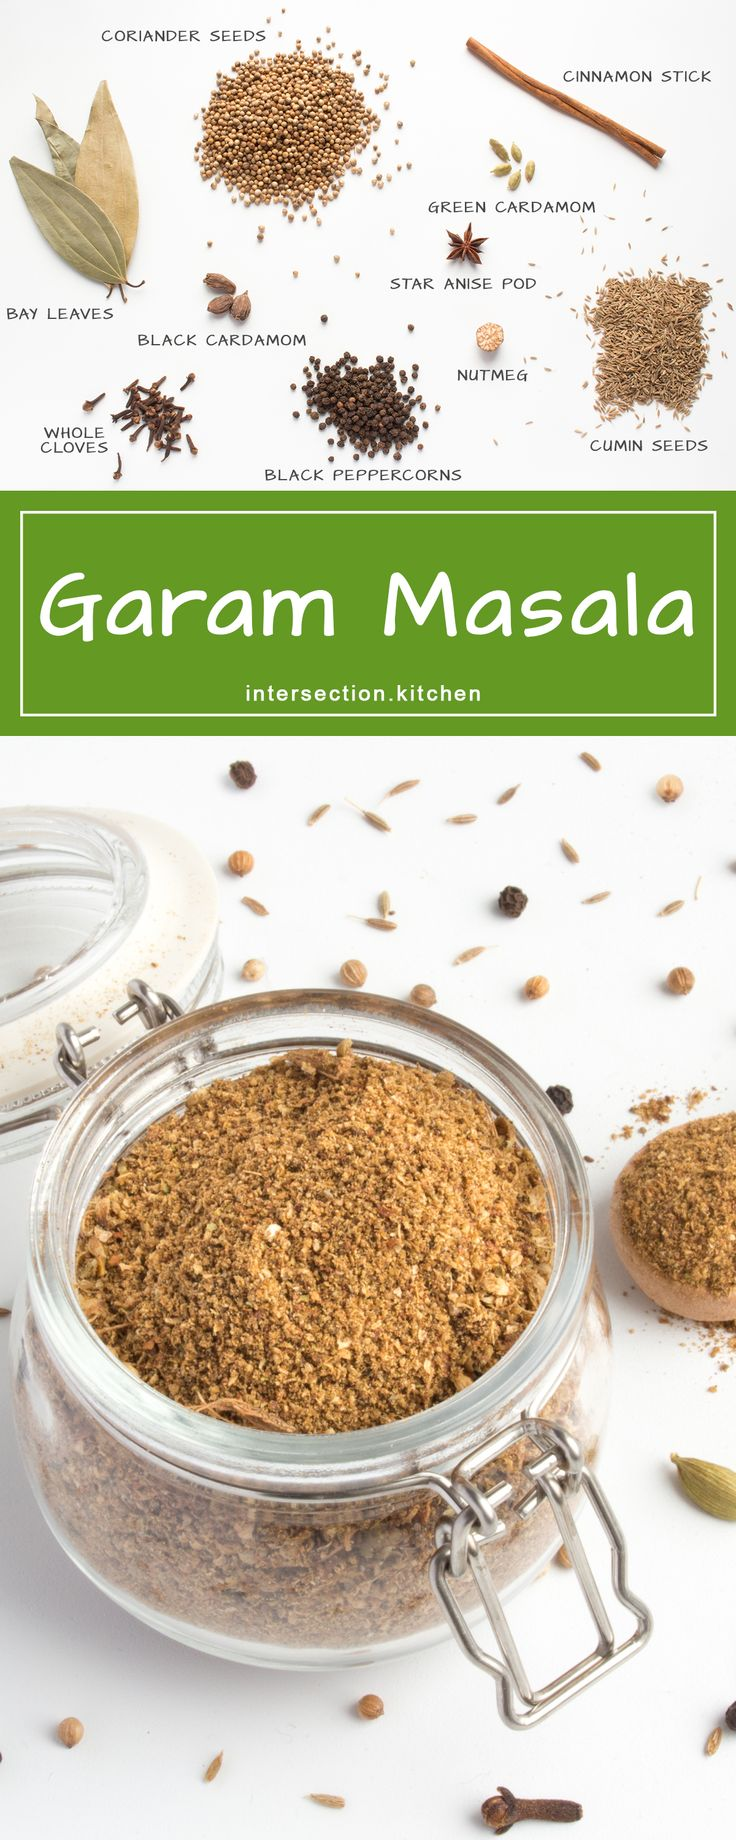 Garam Masala Spice Blend. A versatile and aromatic blend of spices that can be used to flavour Indian and non-Indian dishes.  #garam-masala #spices #recipe